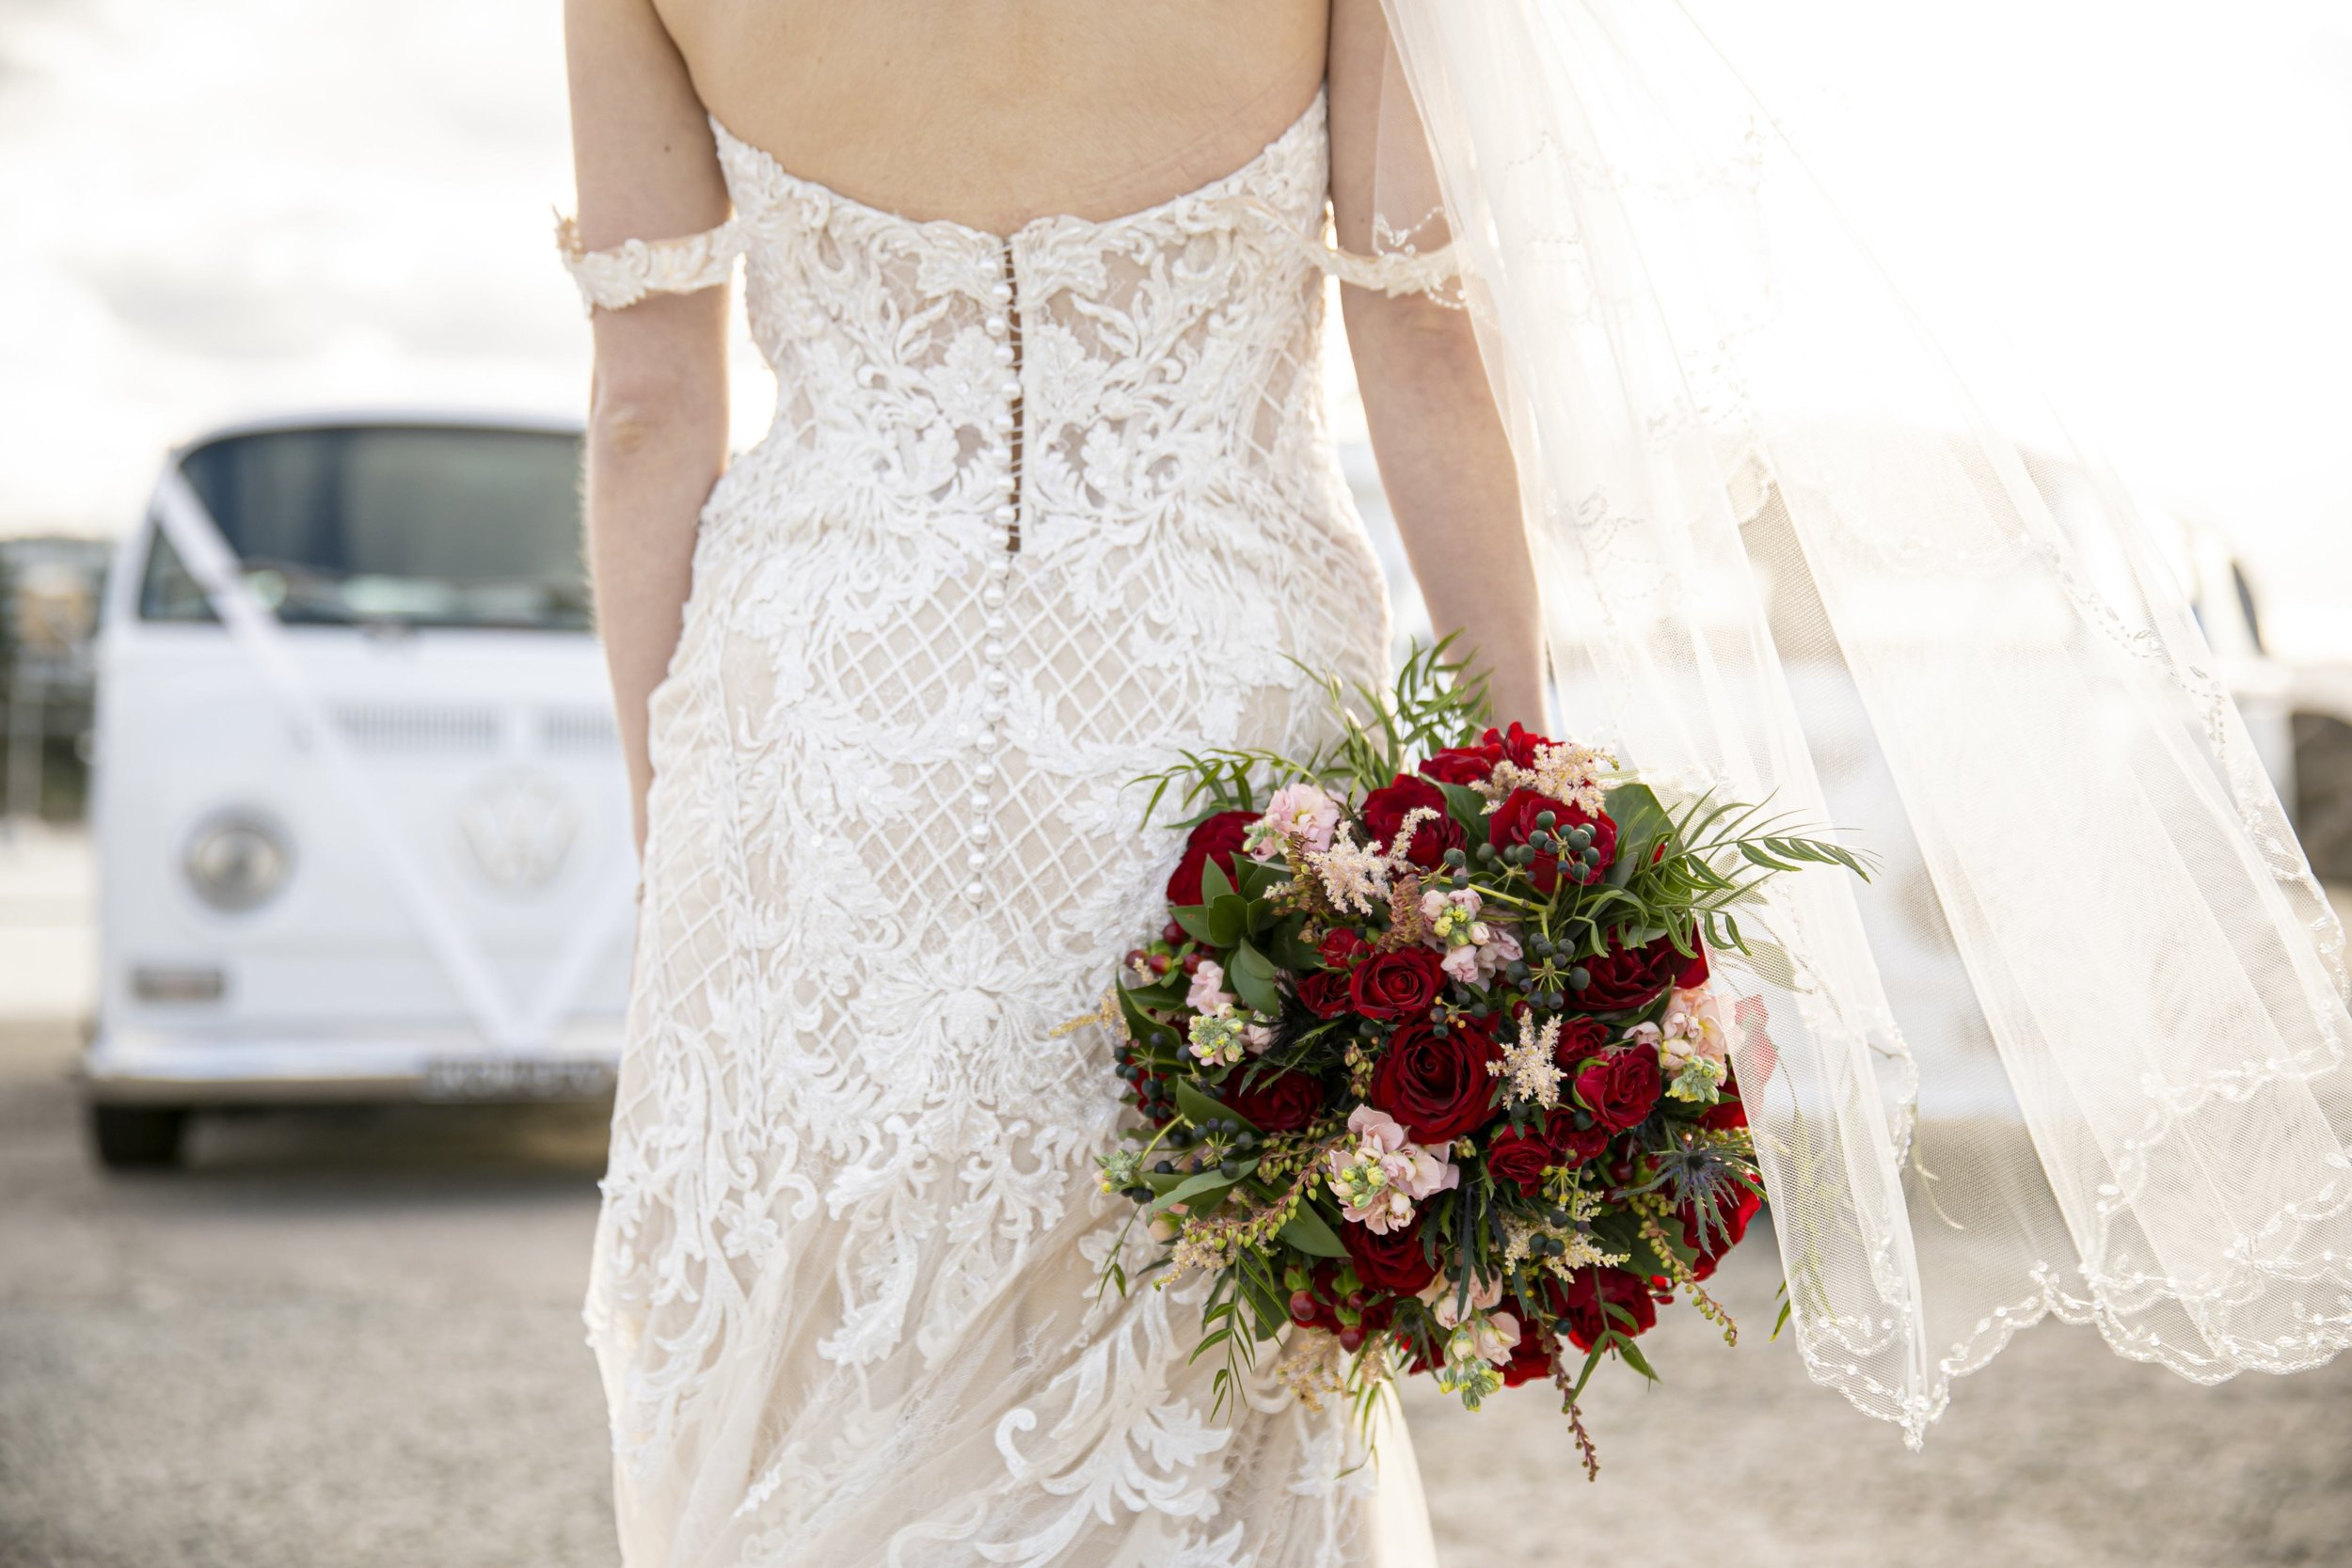 Krystal - Just wanted to thank you for your amazing work with all our bouquets and button holes. You did a spectacular job, they turned out amazing, way better than I could have ever hoped for. Photographer Cole Studios